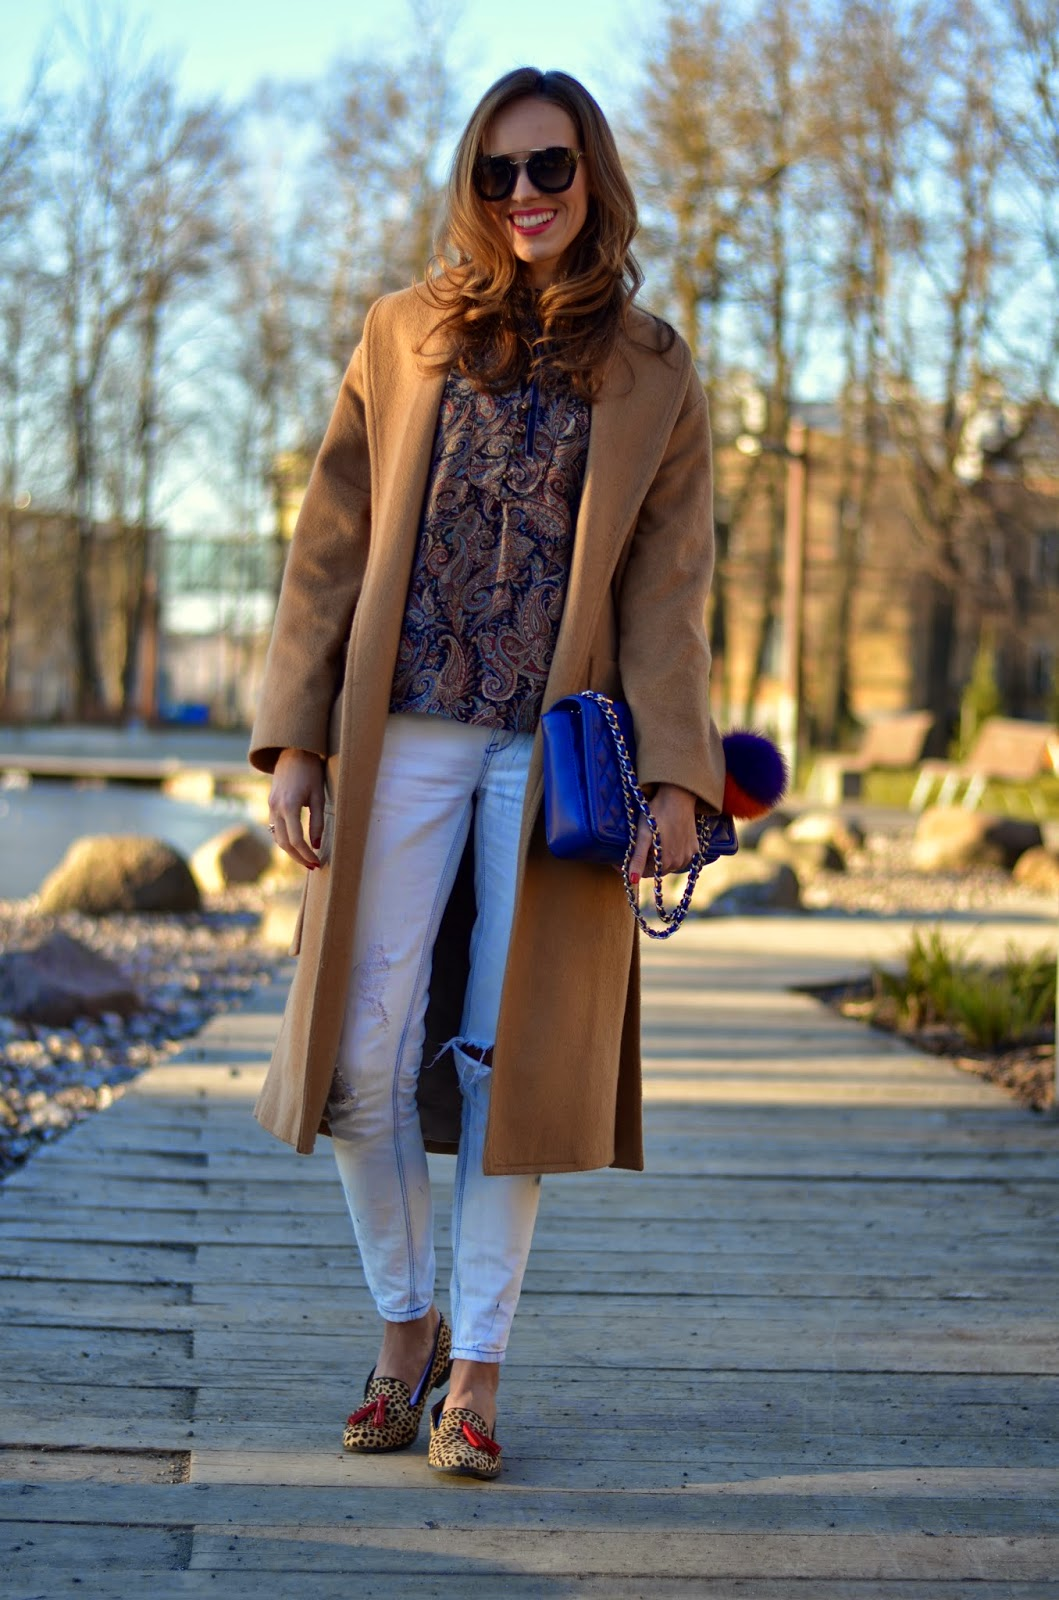 spring outfit camel coat white jeans kristjaana mere